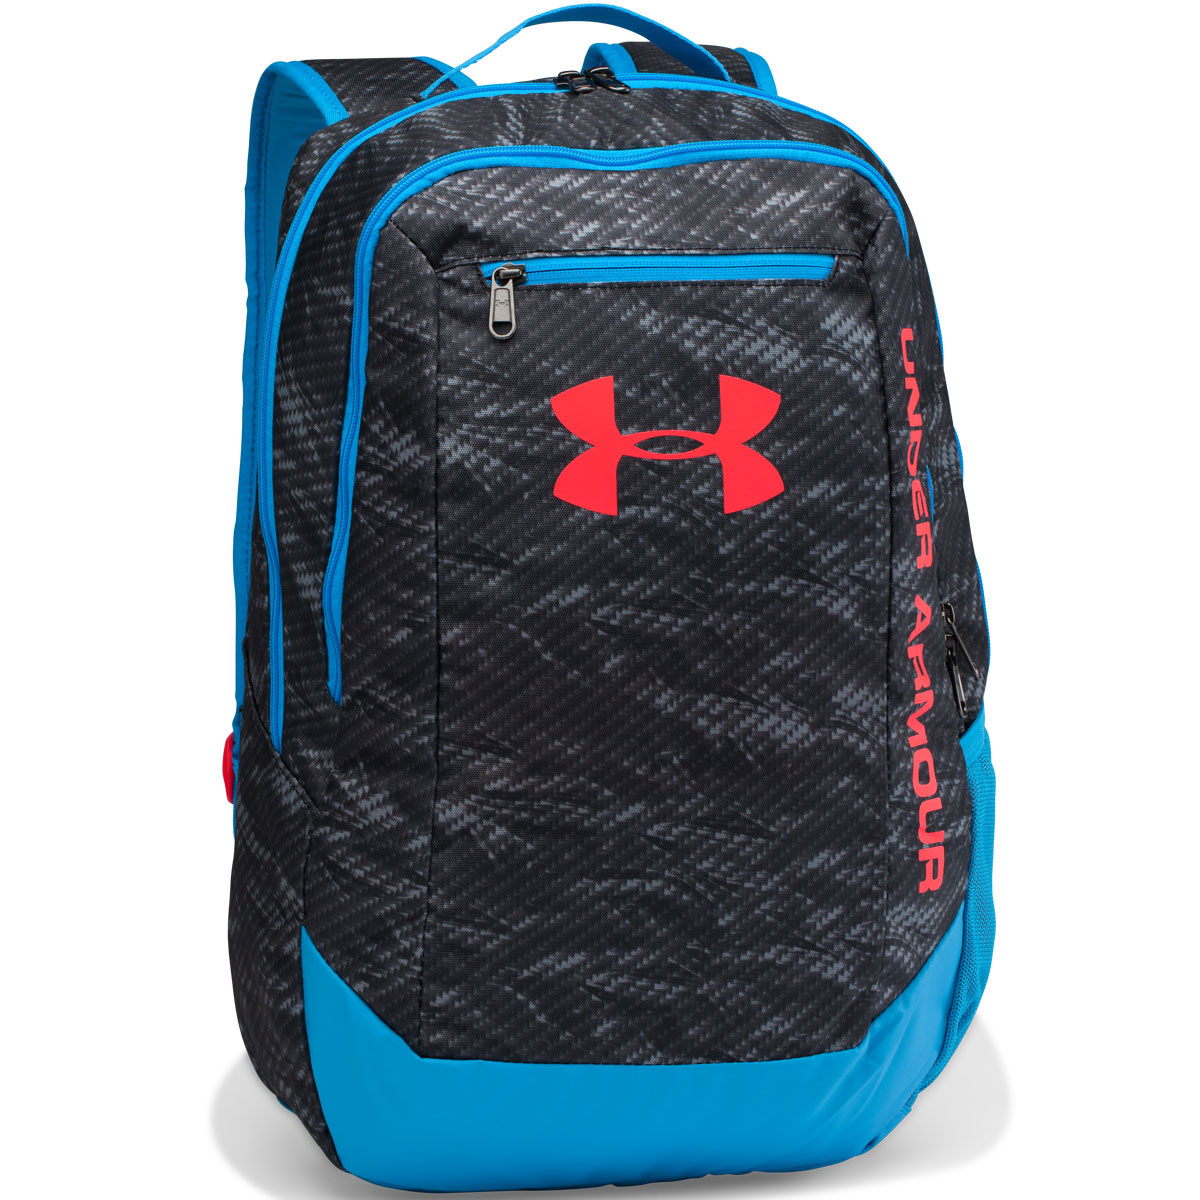 under armour school bags cheap   OFF63% The Largest Catalog Discounts 7f51a931ef1e8